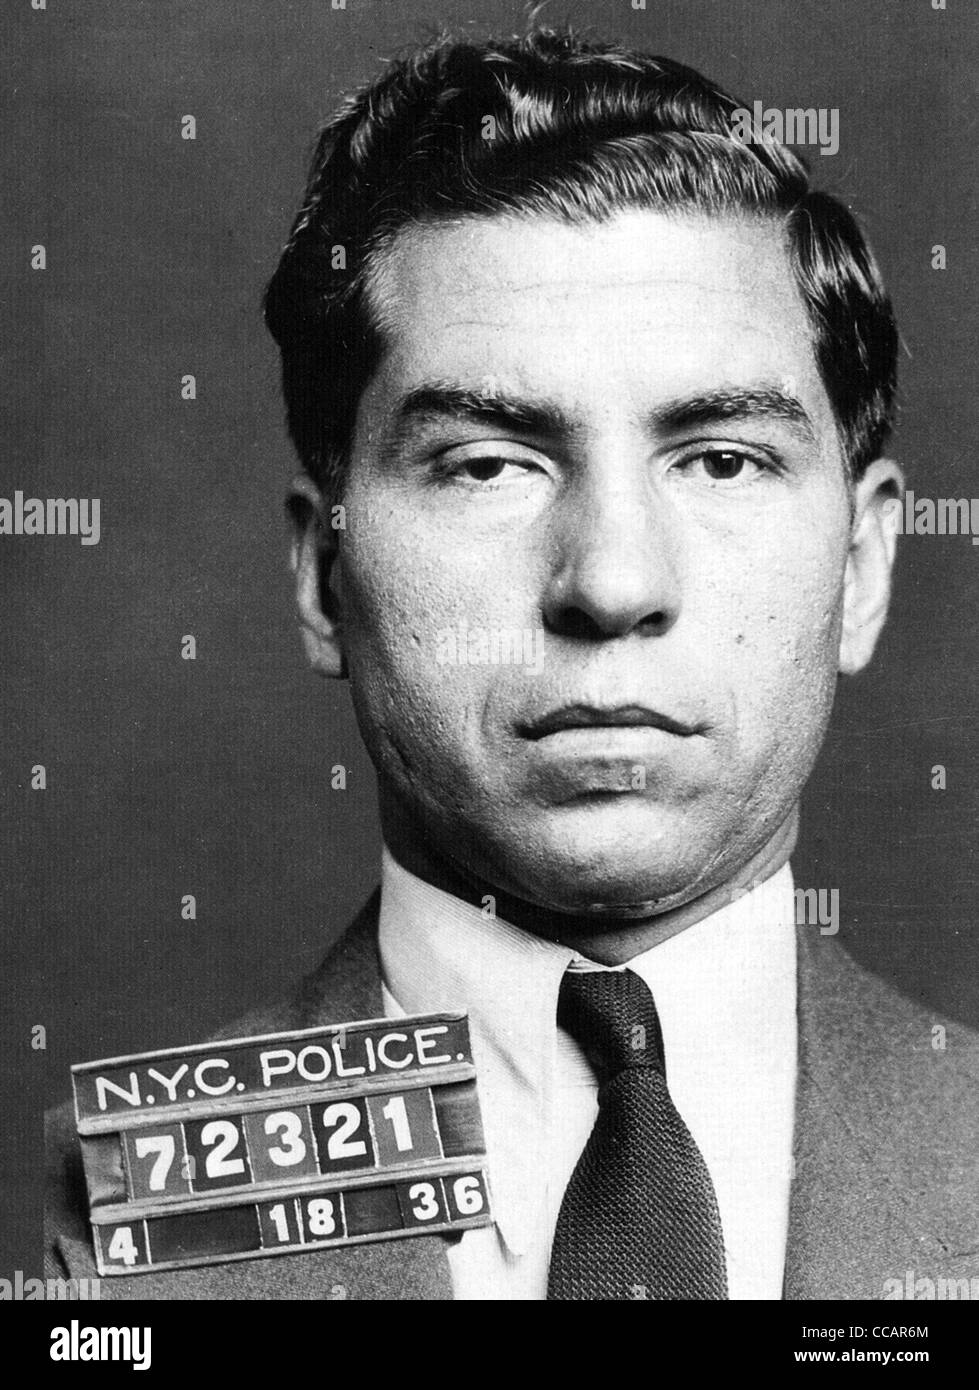 CHARLIE 'LUCKY'  LUCIANO (1897-1962) Sicilian-born US mobster  photographed by the NYPD on 18 April 1936 - Stock Image